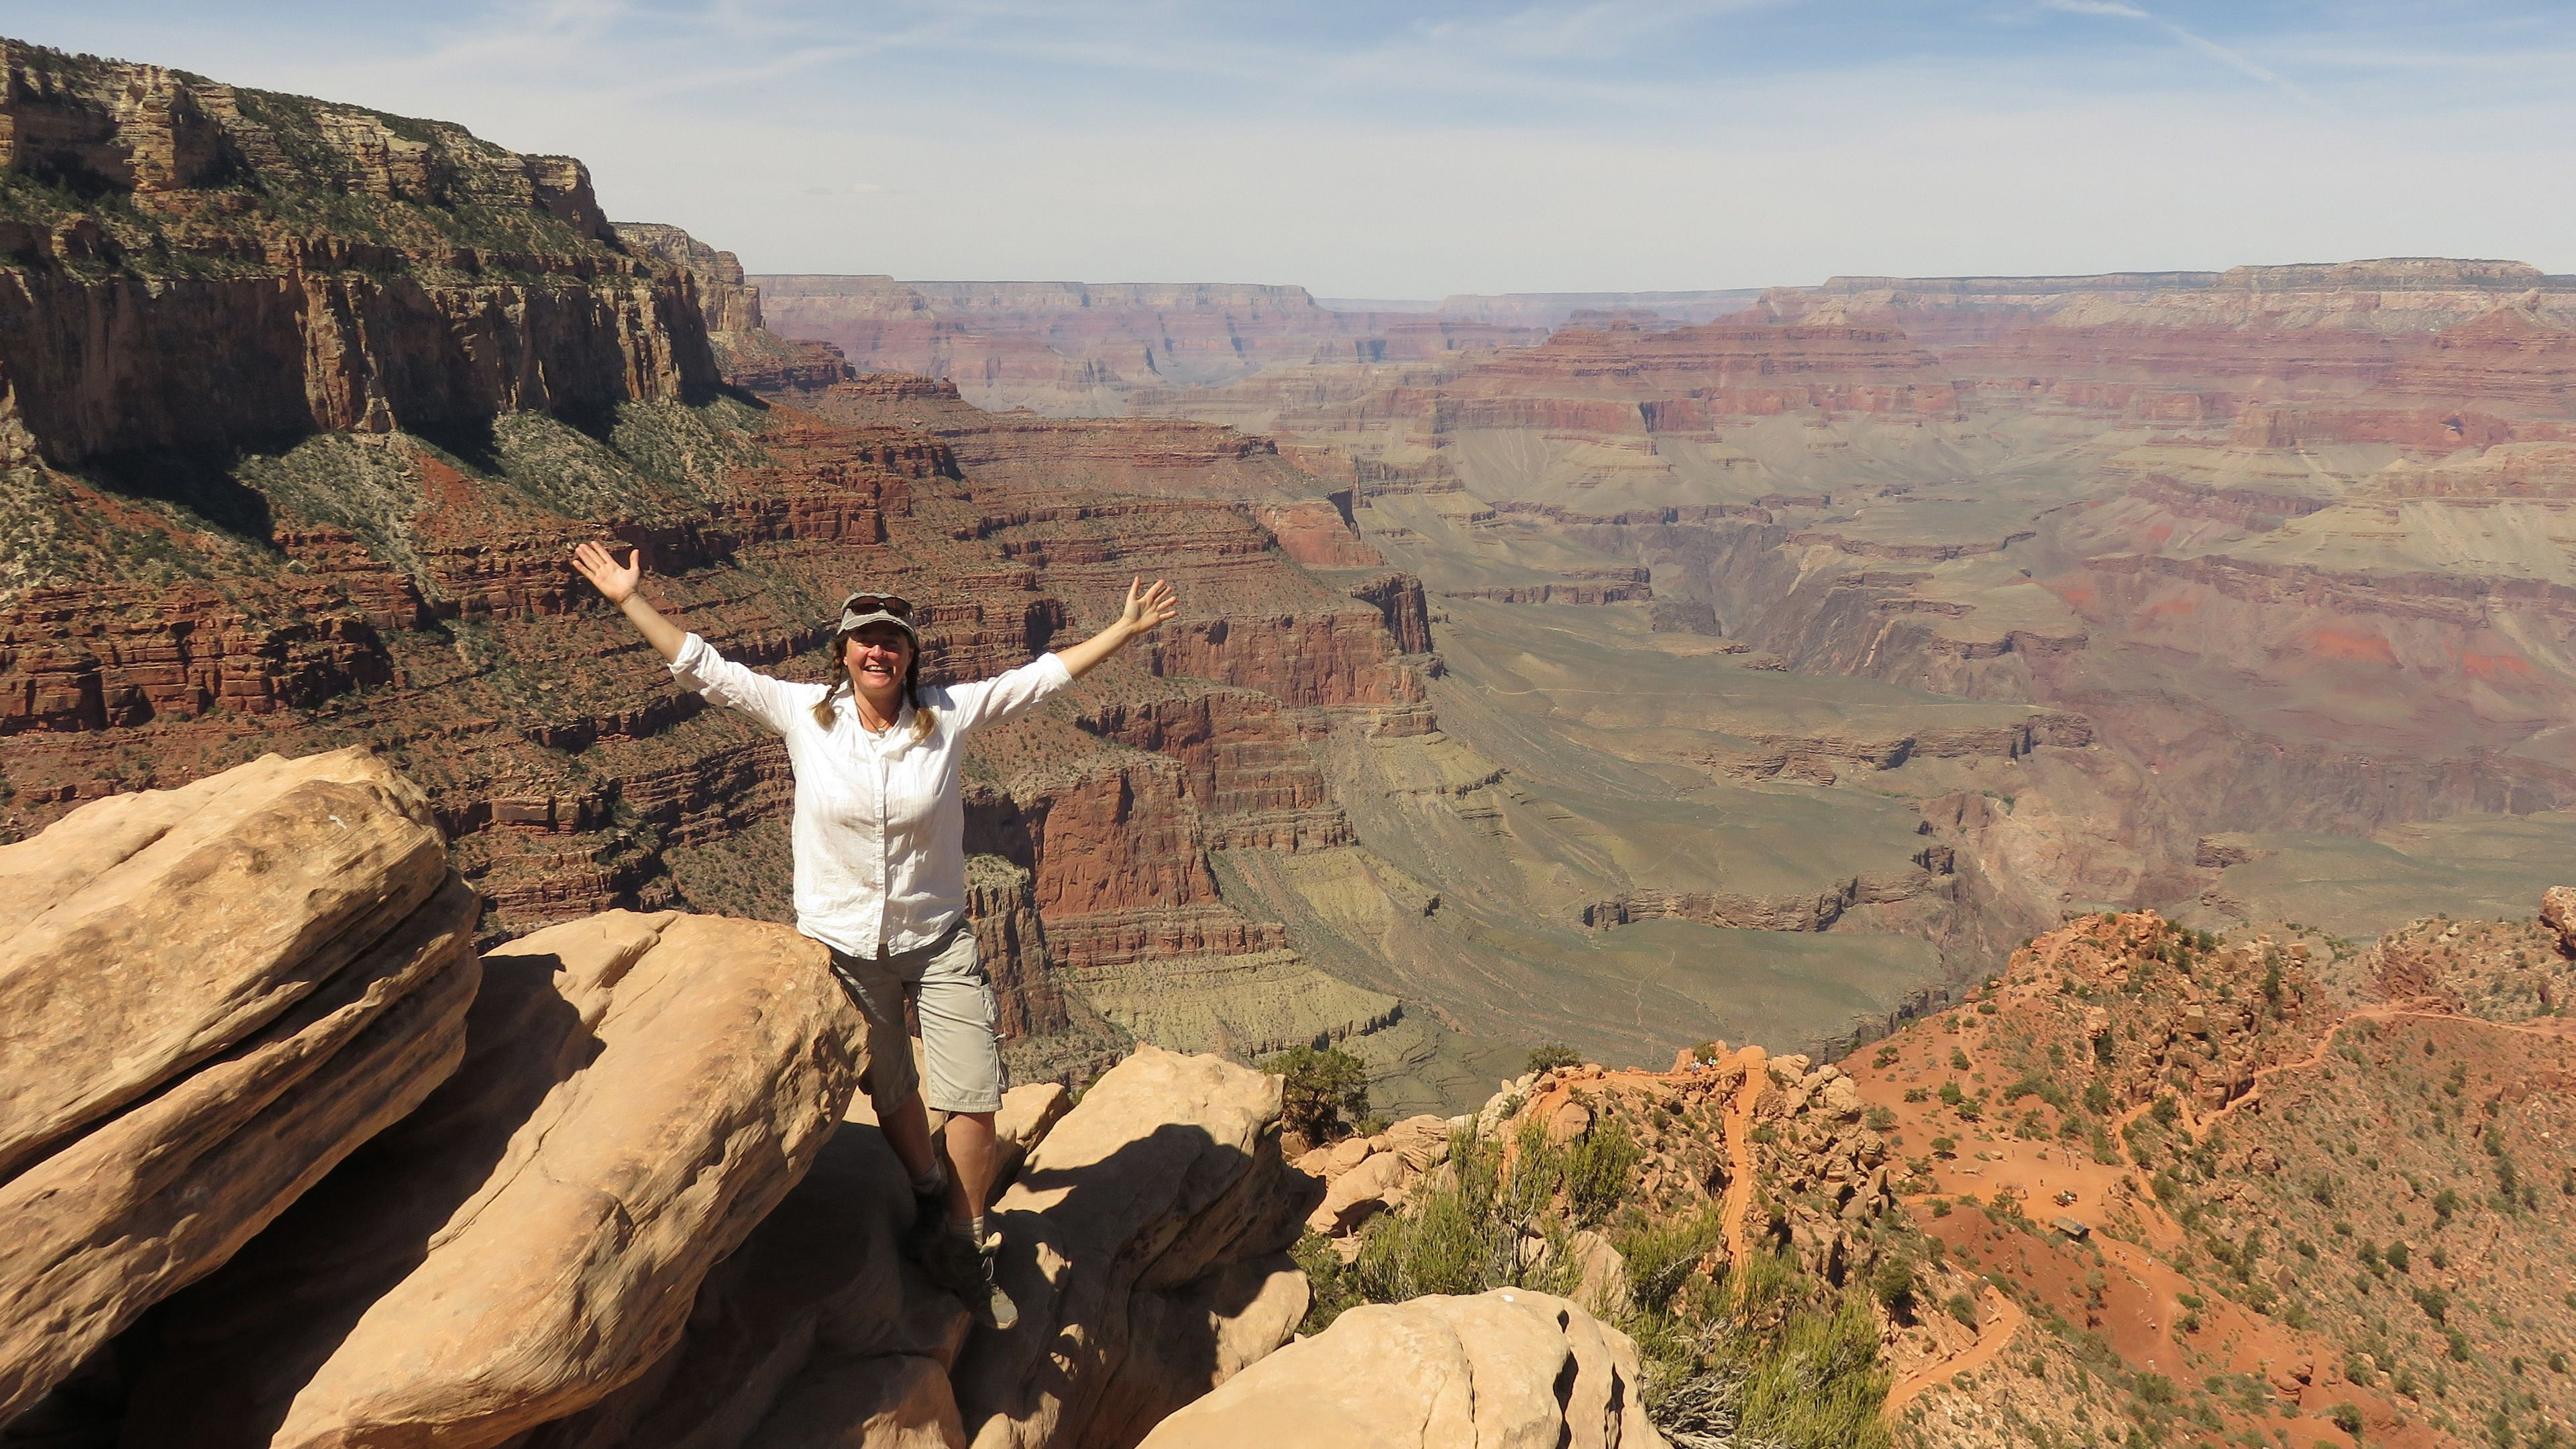 Witness the vastness of the Grand Canyon from the South Rim